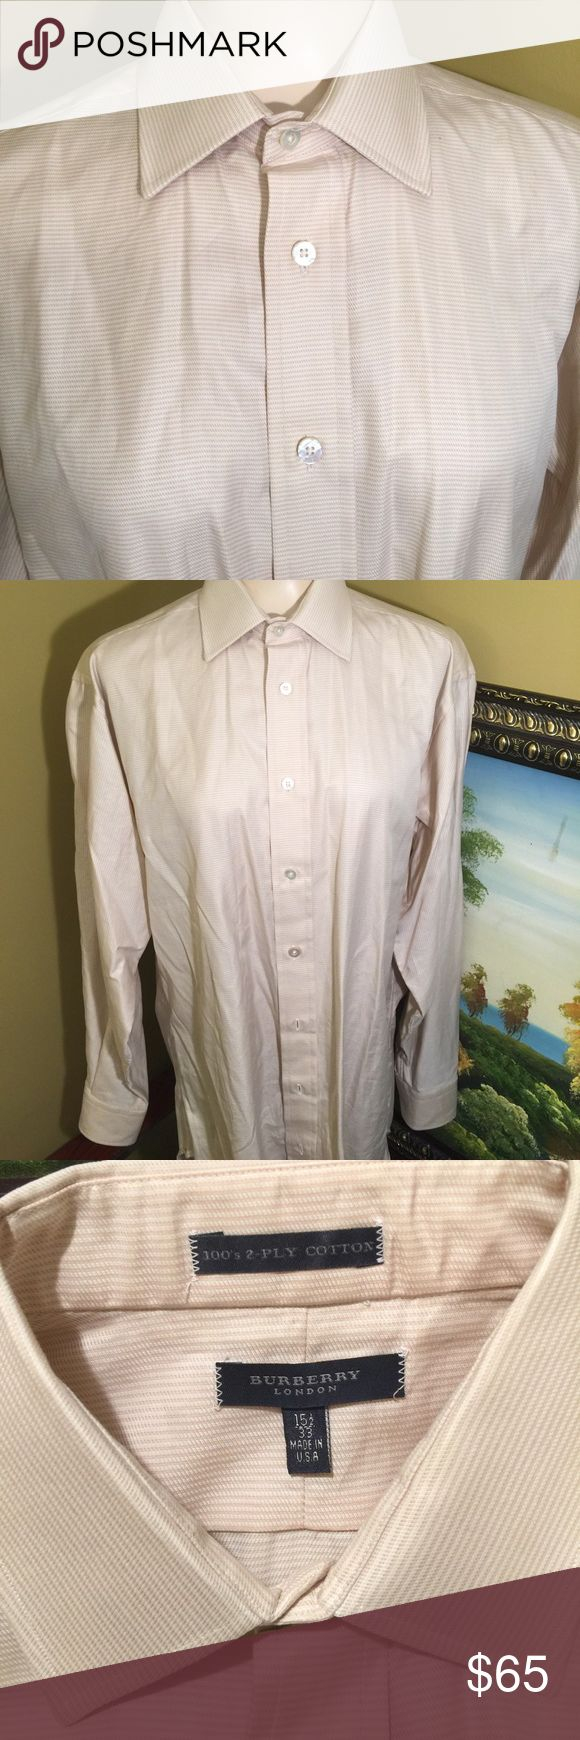 BURBERRY SHIRT 100's 2-PLY COTTON Beautiful BURBERRY shirt made in USA 2 PLY Cotton excellent condition Burberry Shirts Tees - Long Sleeve